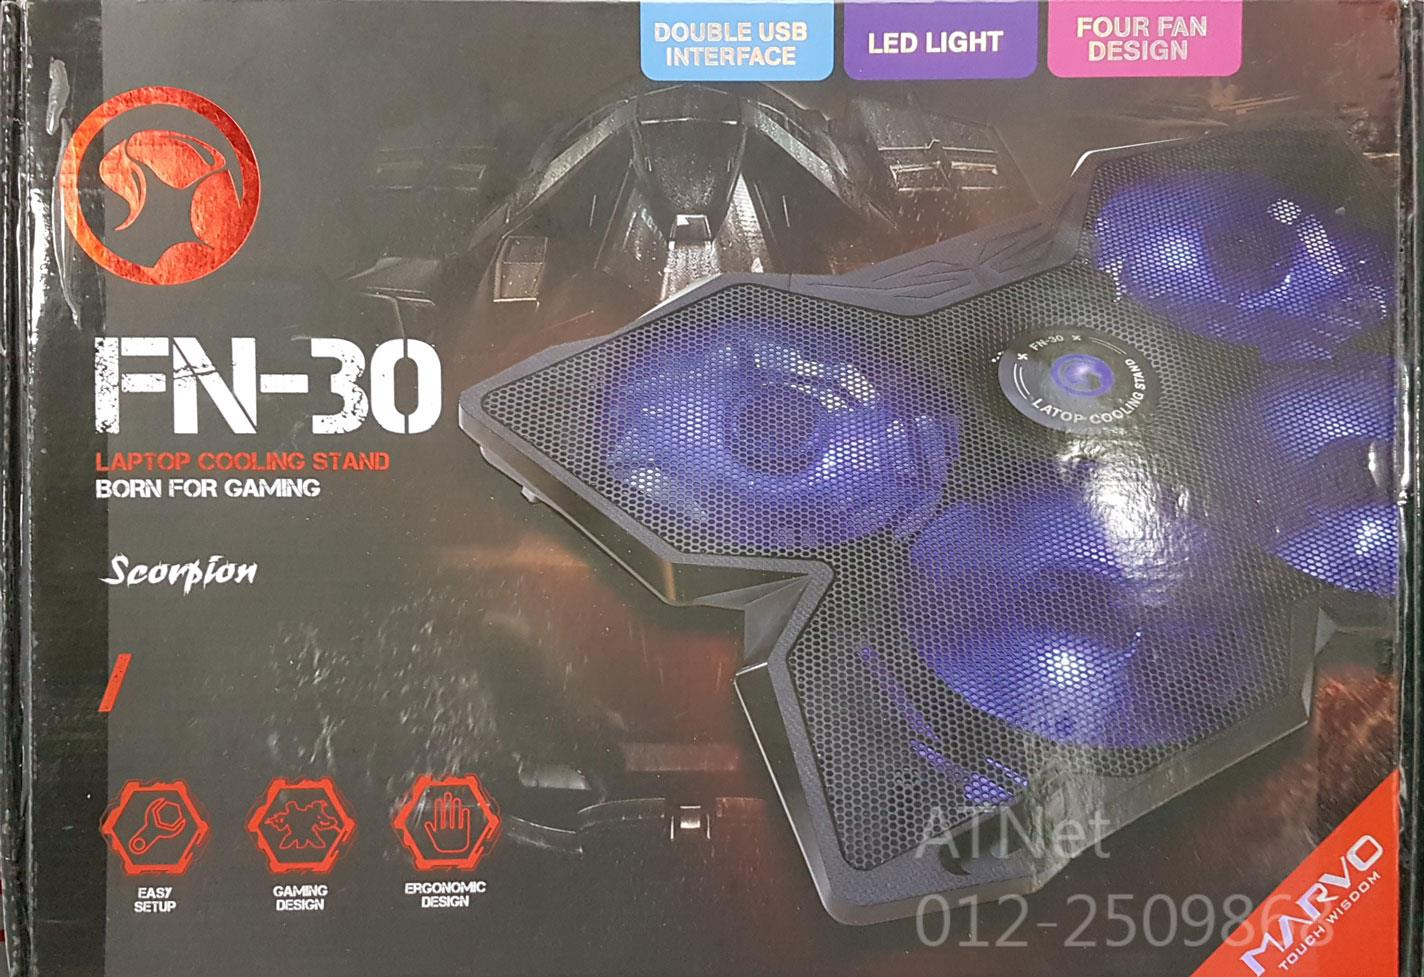 MARVO 4 LED FAN LAPTOP COOLING STAND FOR GAMING (FN-30)